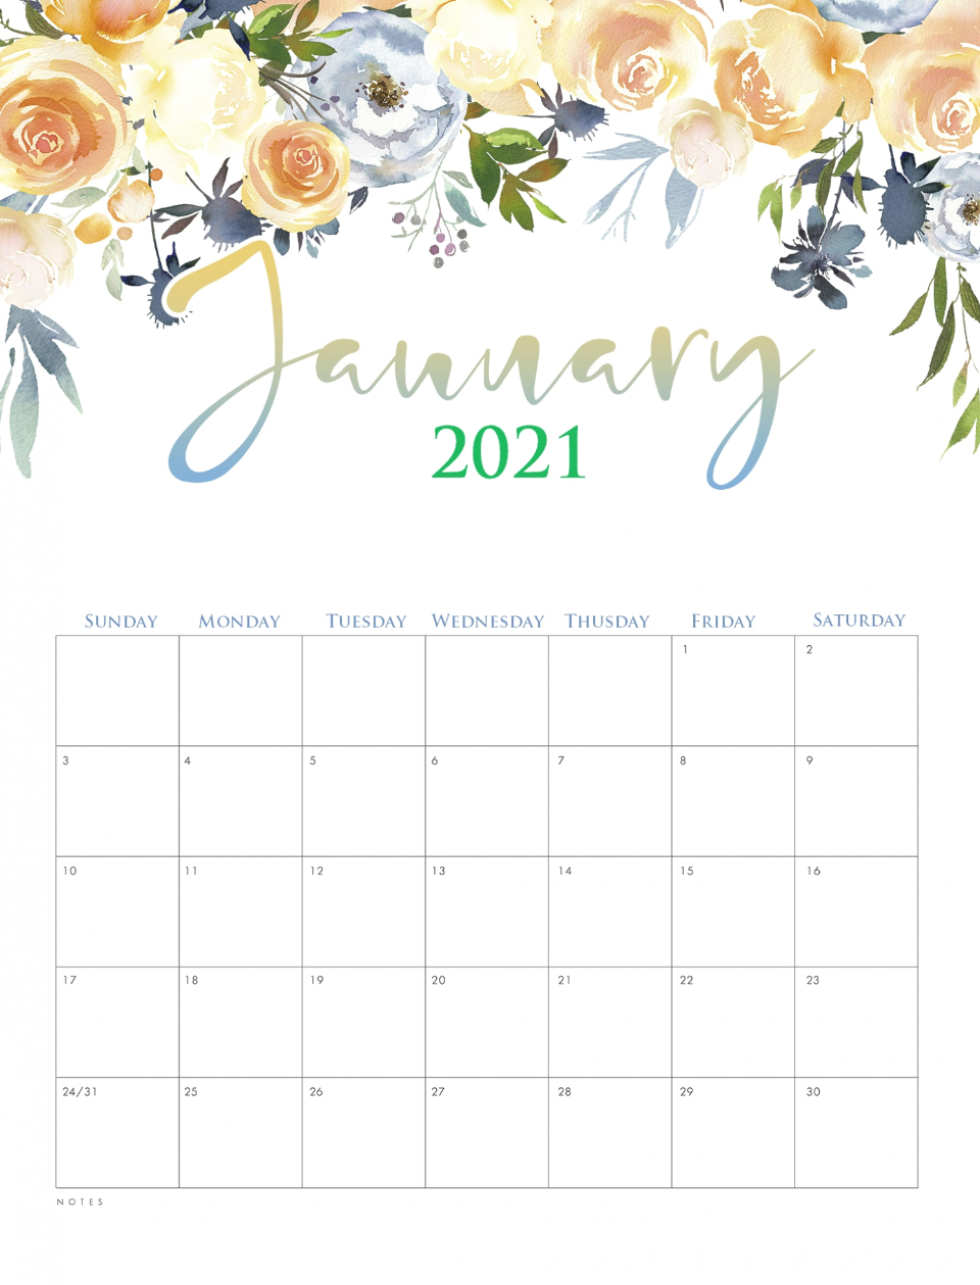 January Printable Calendar 2021 Cute Planner Monthly Etsy In 2020 Monthly Calendar Printable Calendar Printables Calendar Template